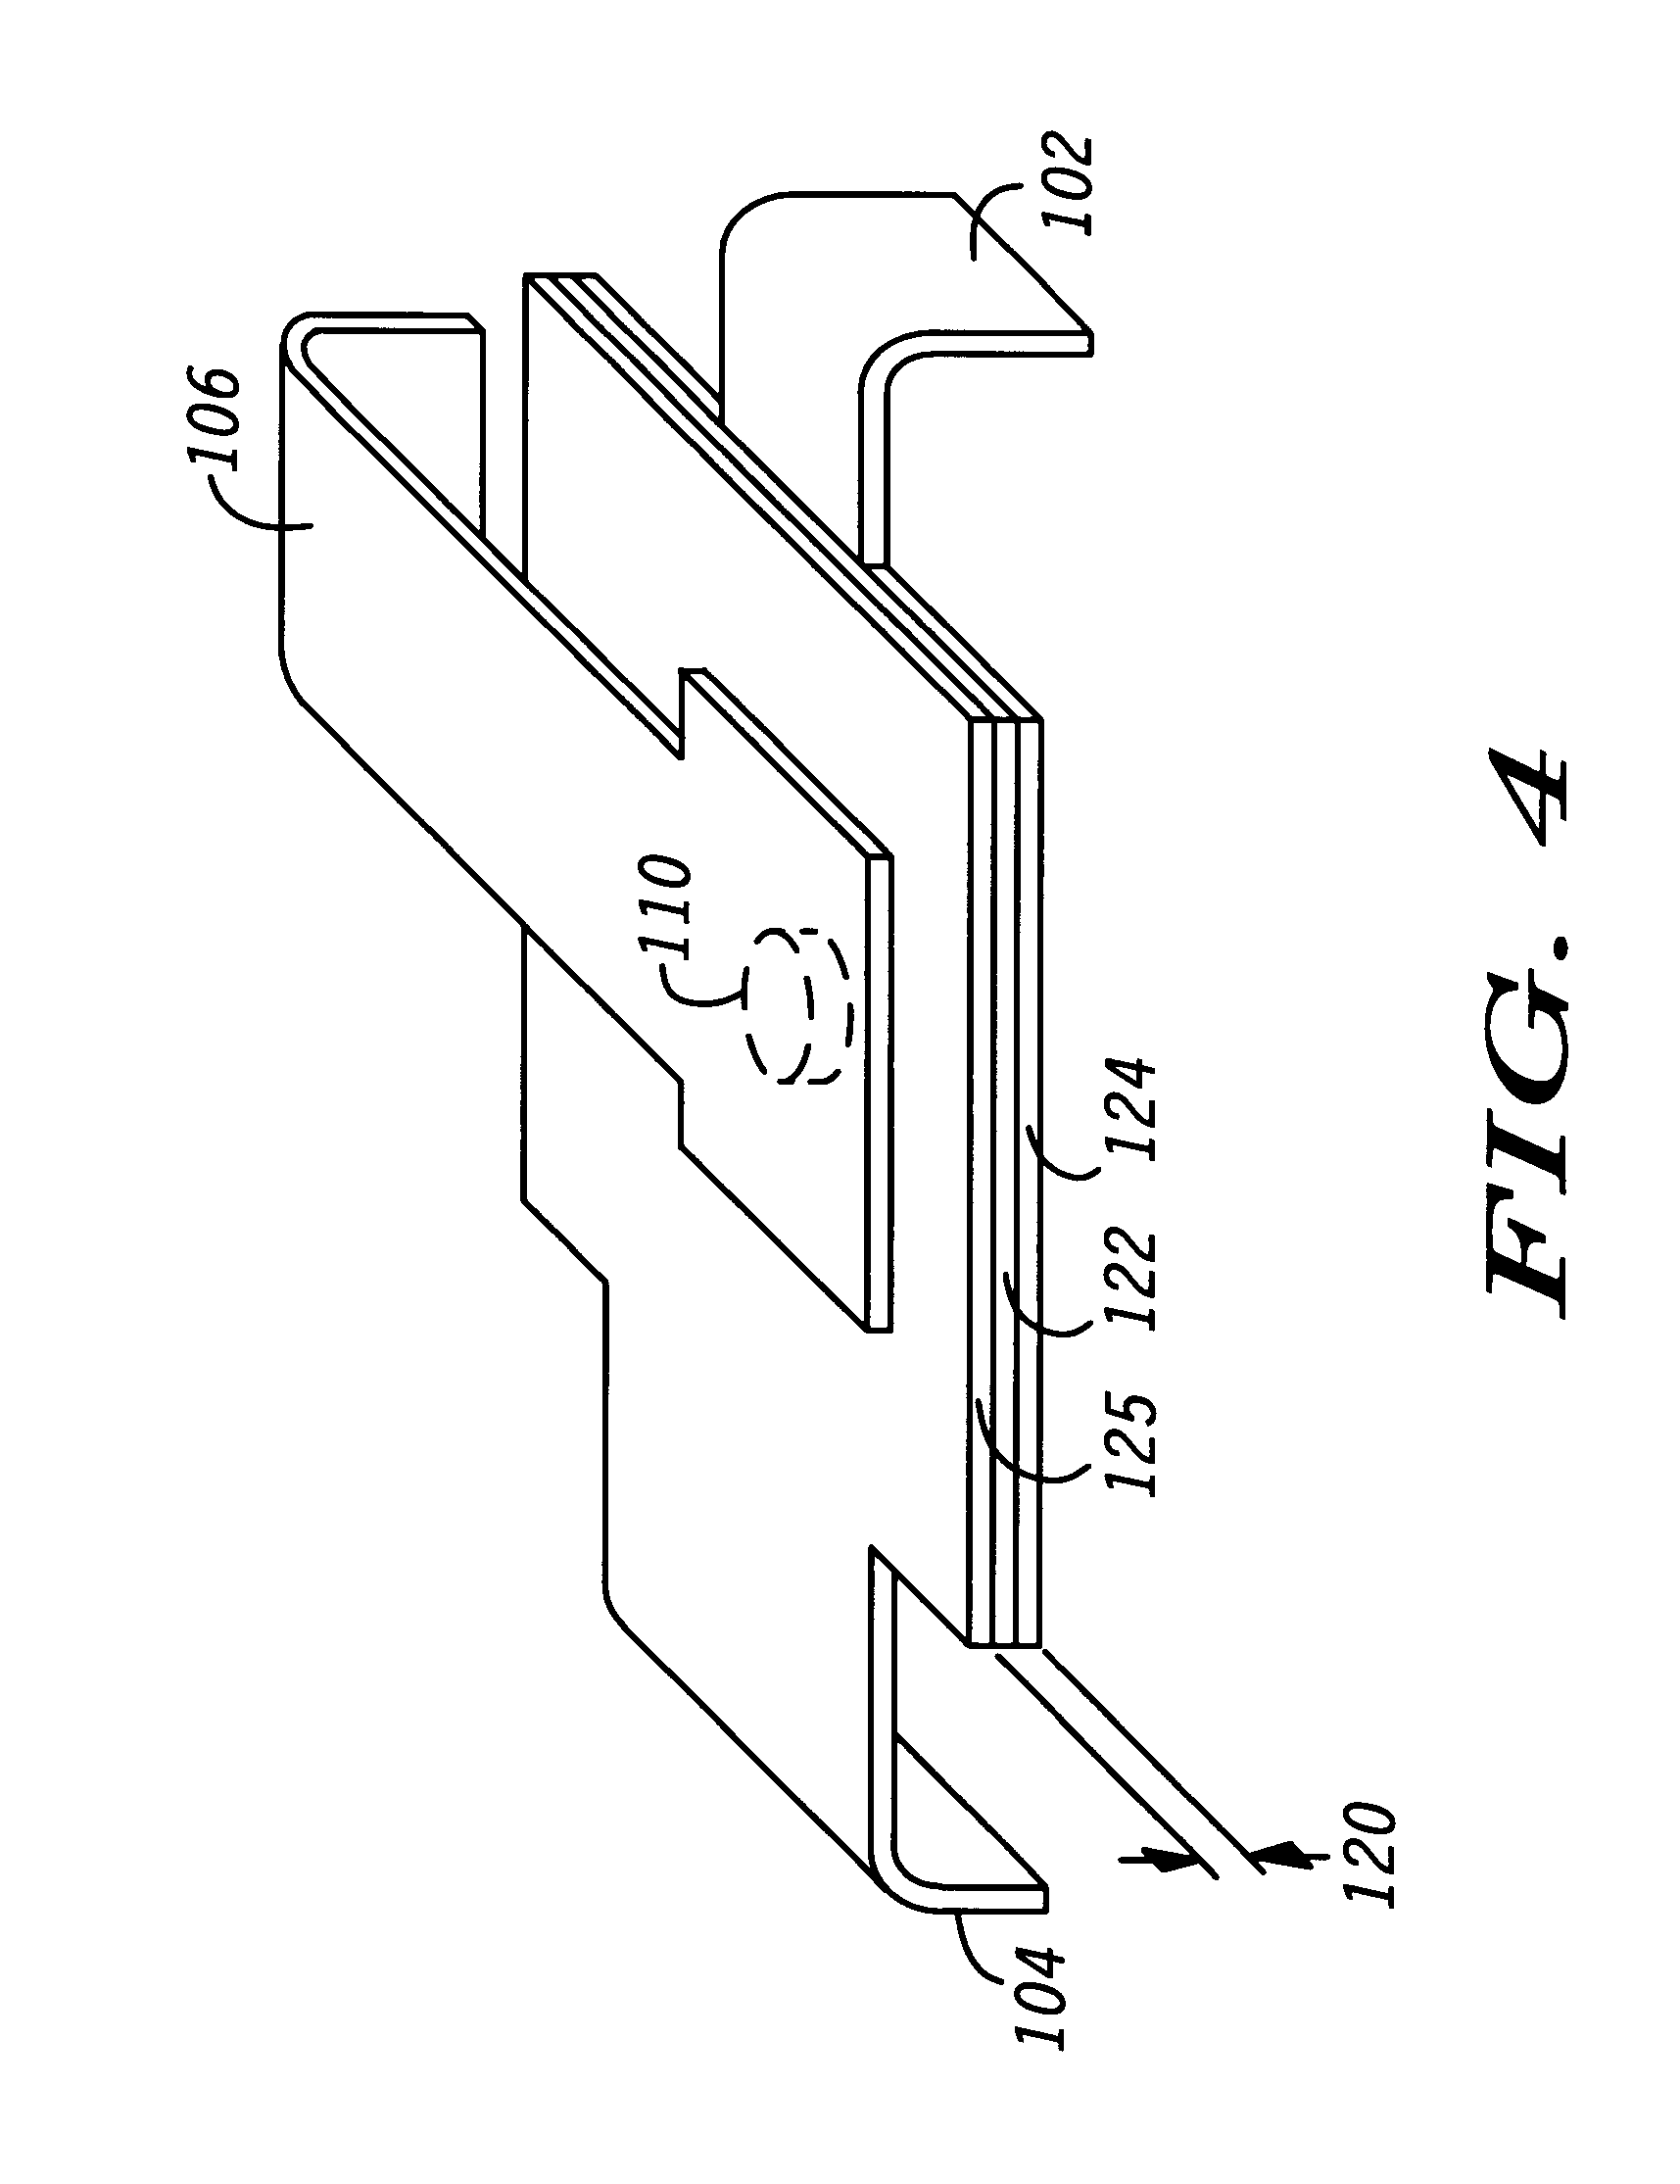 patent us6331764 - supplemental battery overcharge protection device